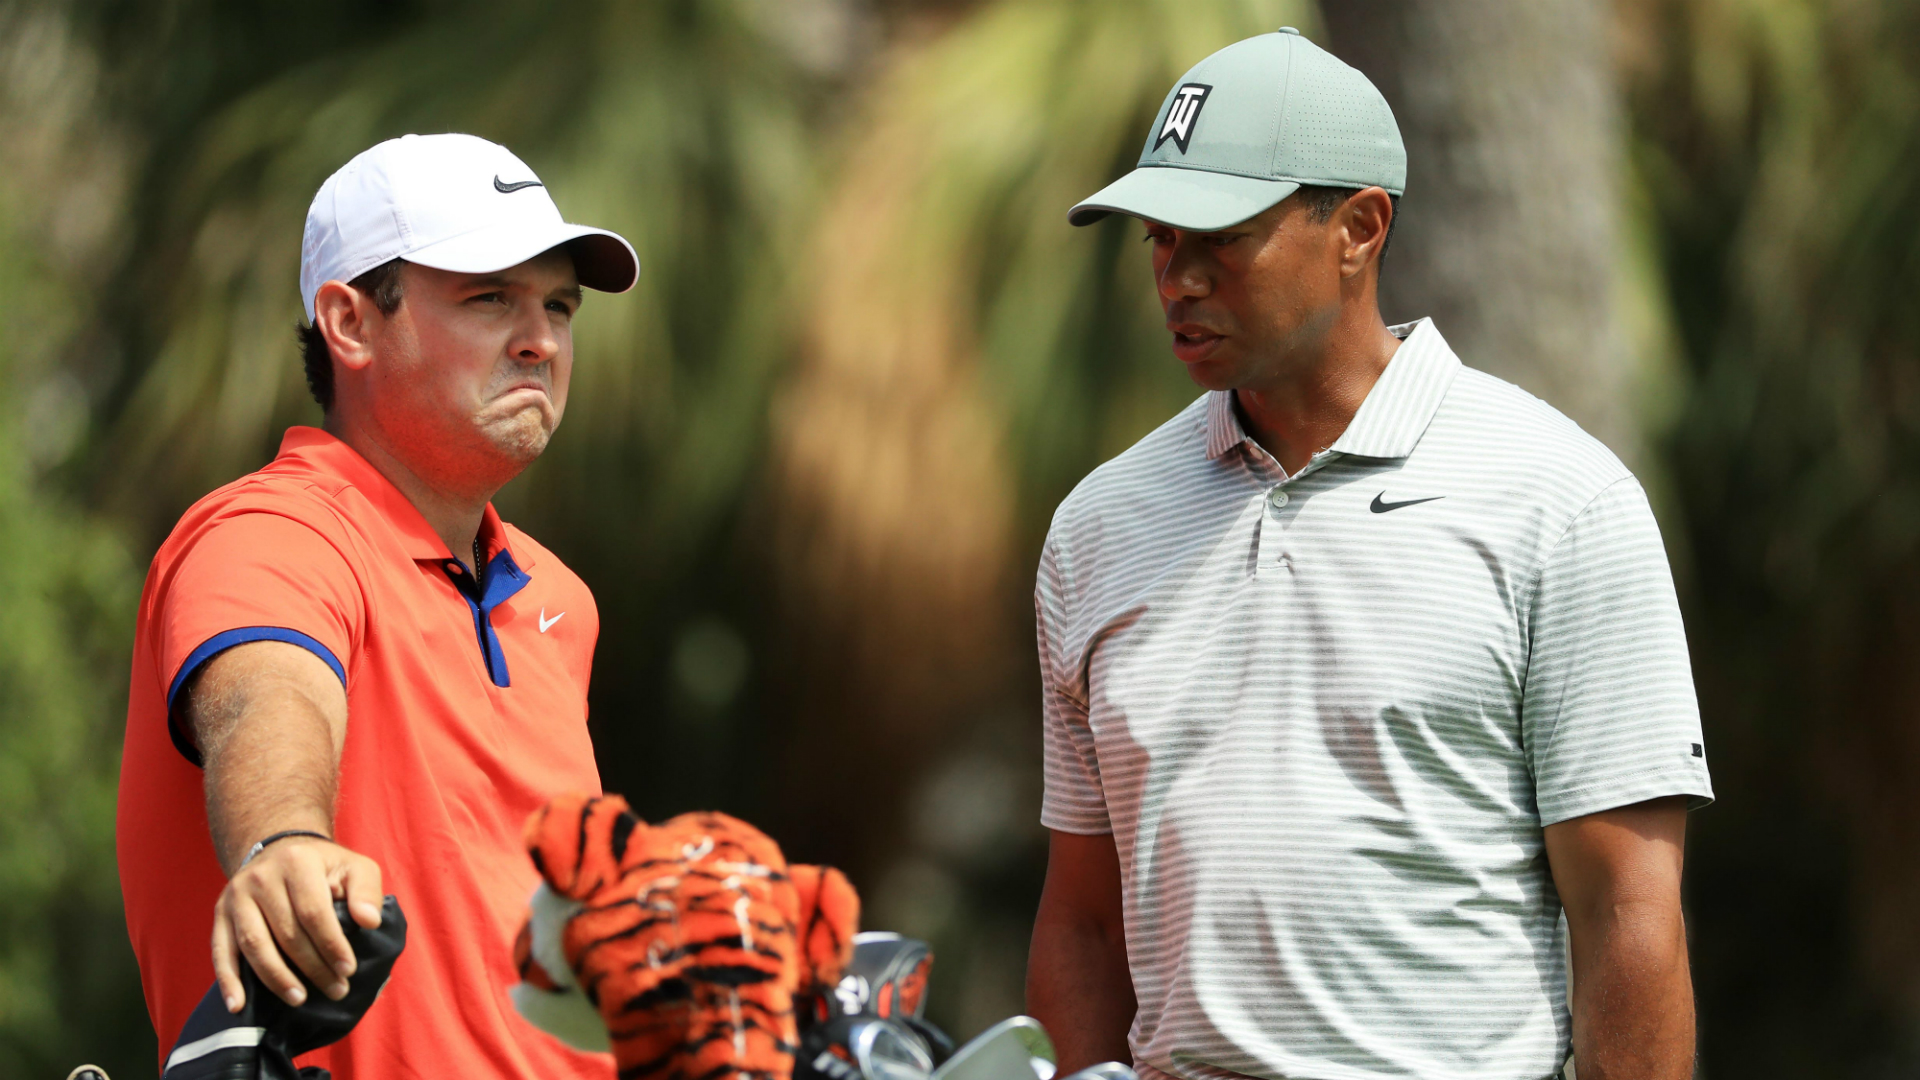 British Open 2019 tee times: Tiger Woods paired with Patrick Reed among marquee groups